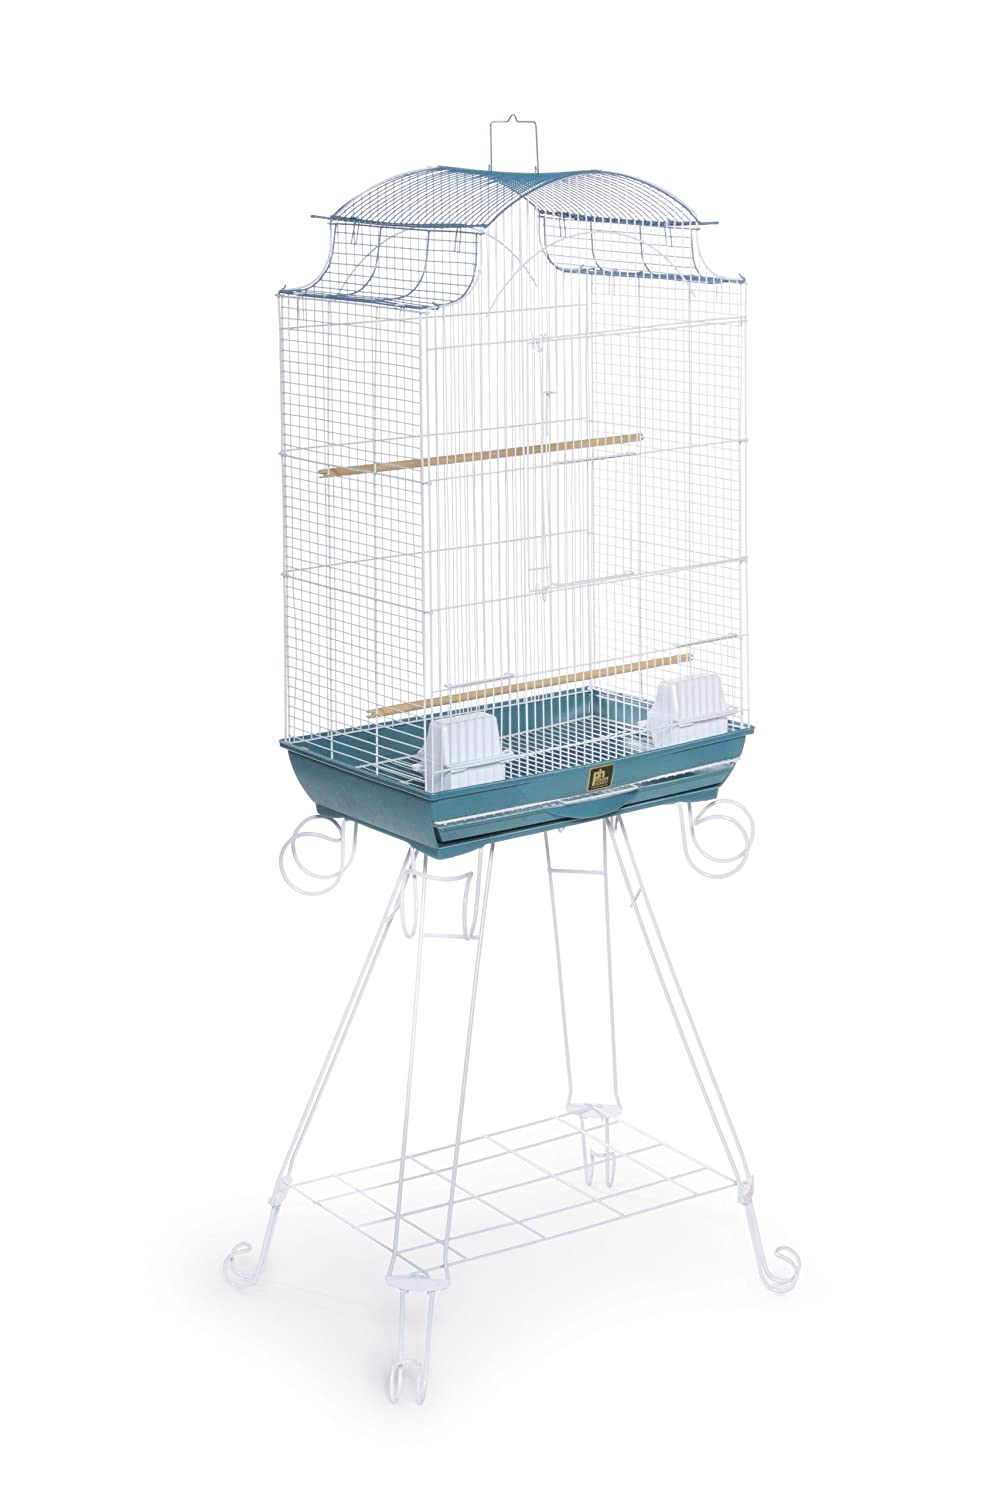 Prevue Pet Products Penthouse Suites Pagoda Roof Bird Cage with Stand 270 Blue and White, 20-Inch by 14-Inch by 29-Inch Inc.